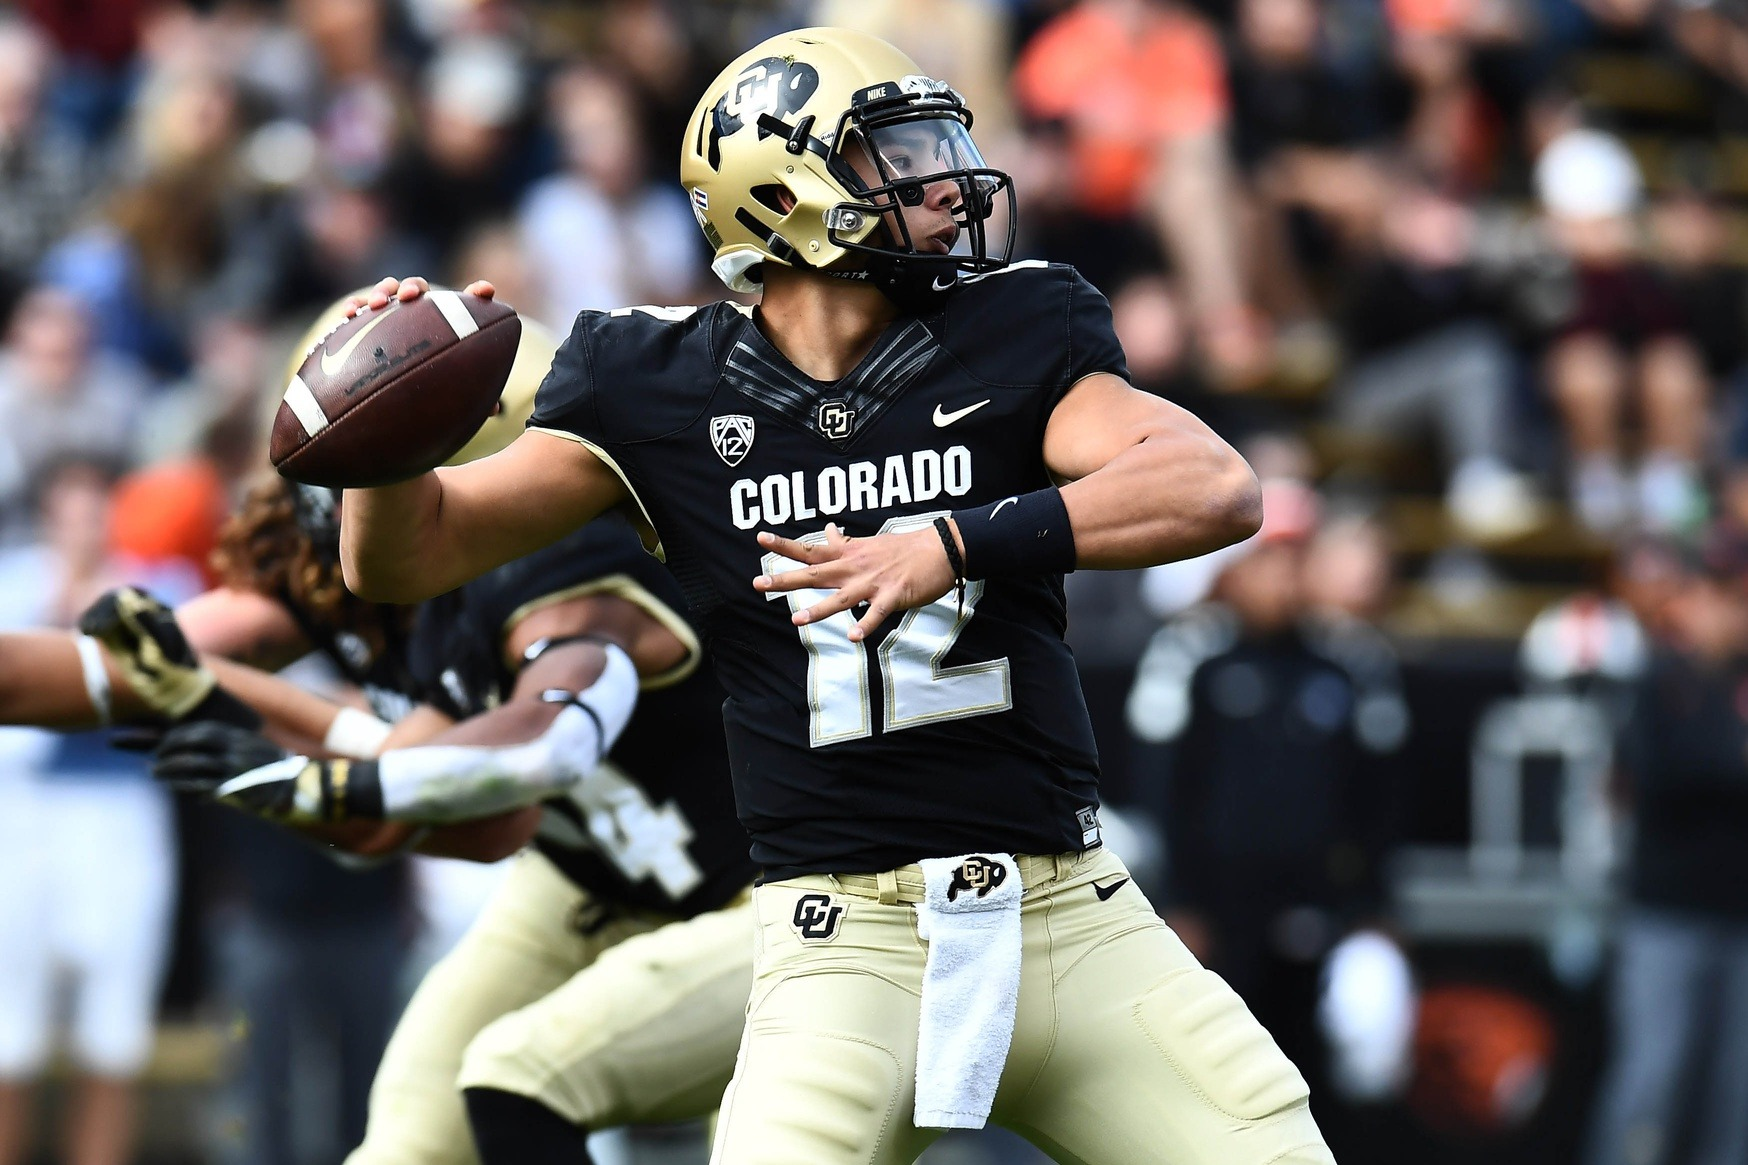 A game-by-game breakdown of the Buffs' 2019 football schedule: Part I